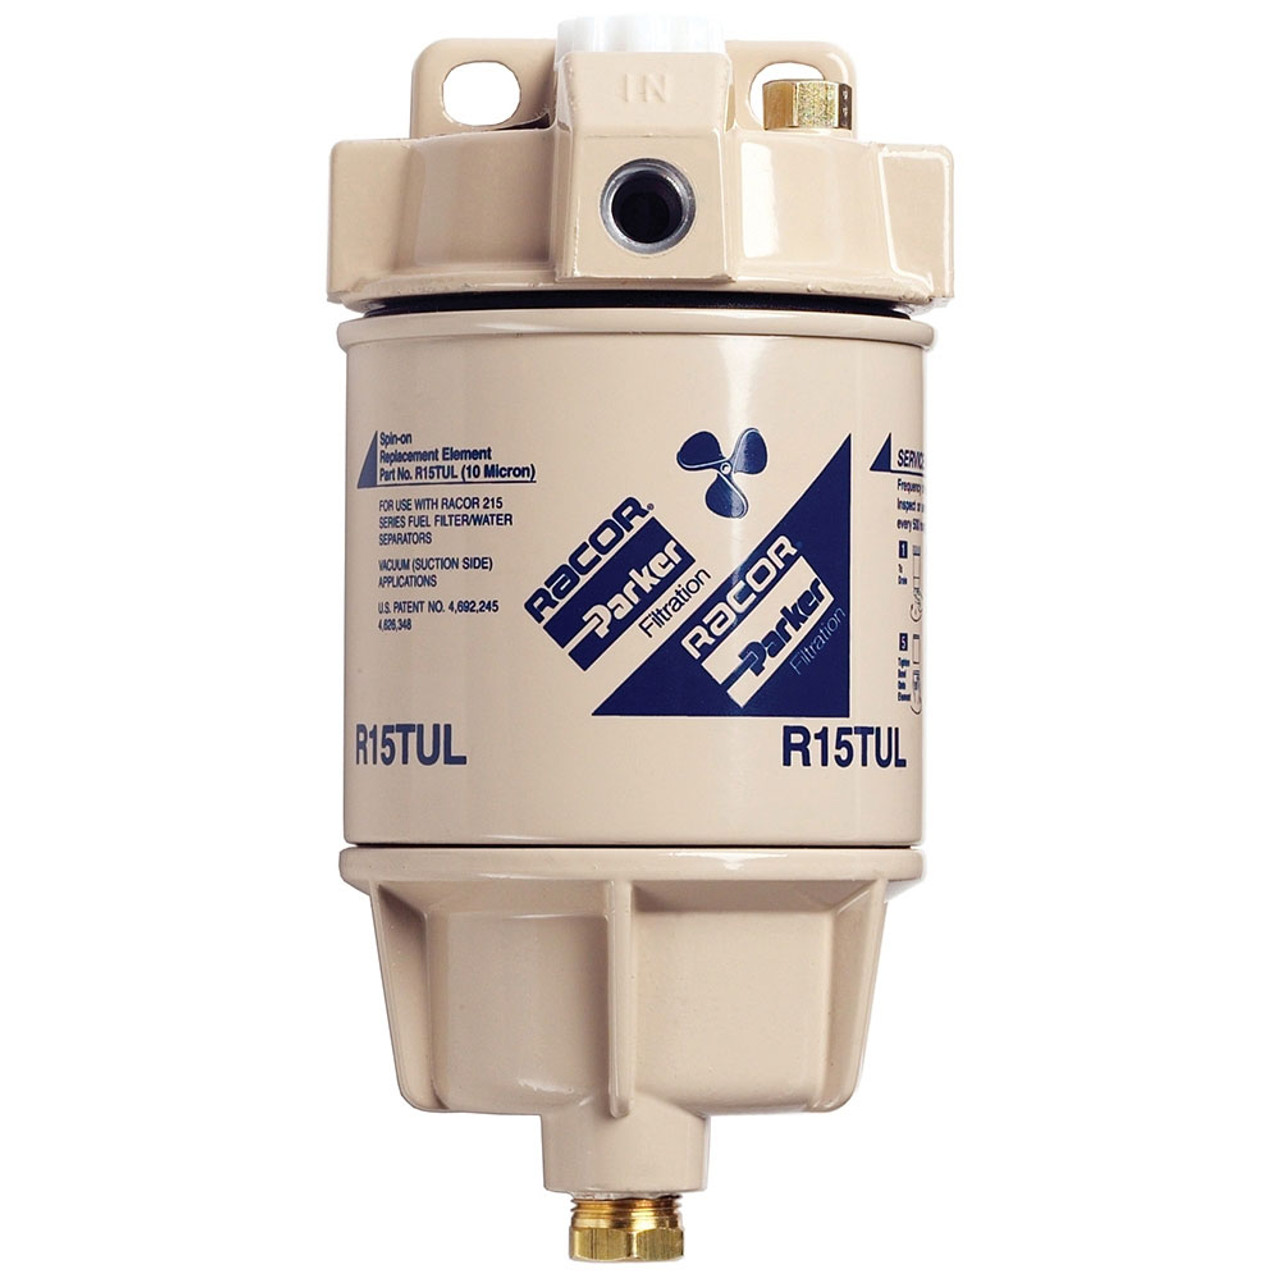 medium resolution of racor 1 4 in 15 gph aquabloc marine spin on type diesel fuel filter water separator assembly 6 qty john m ellsworth co inc